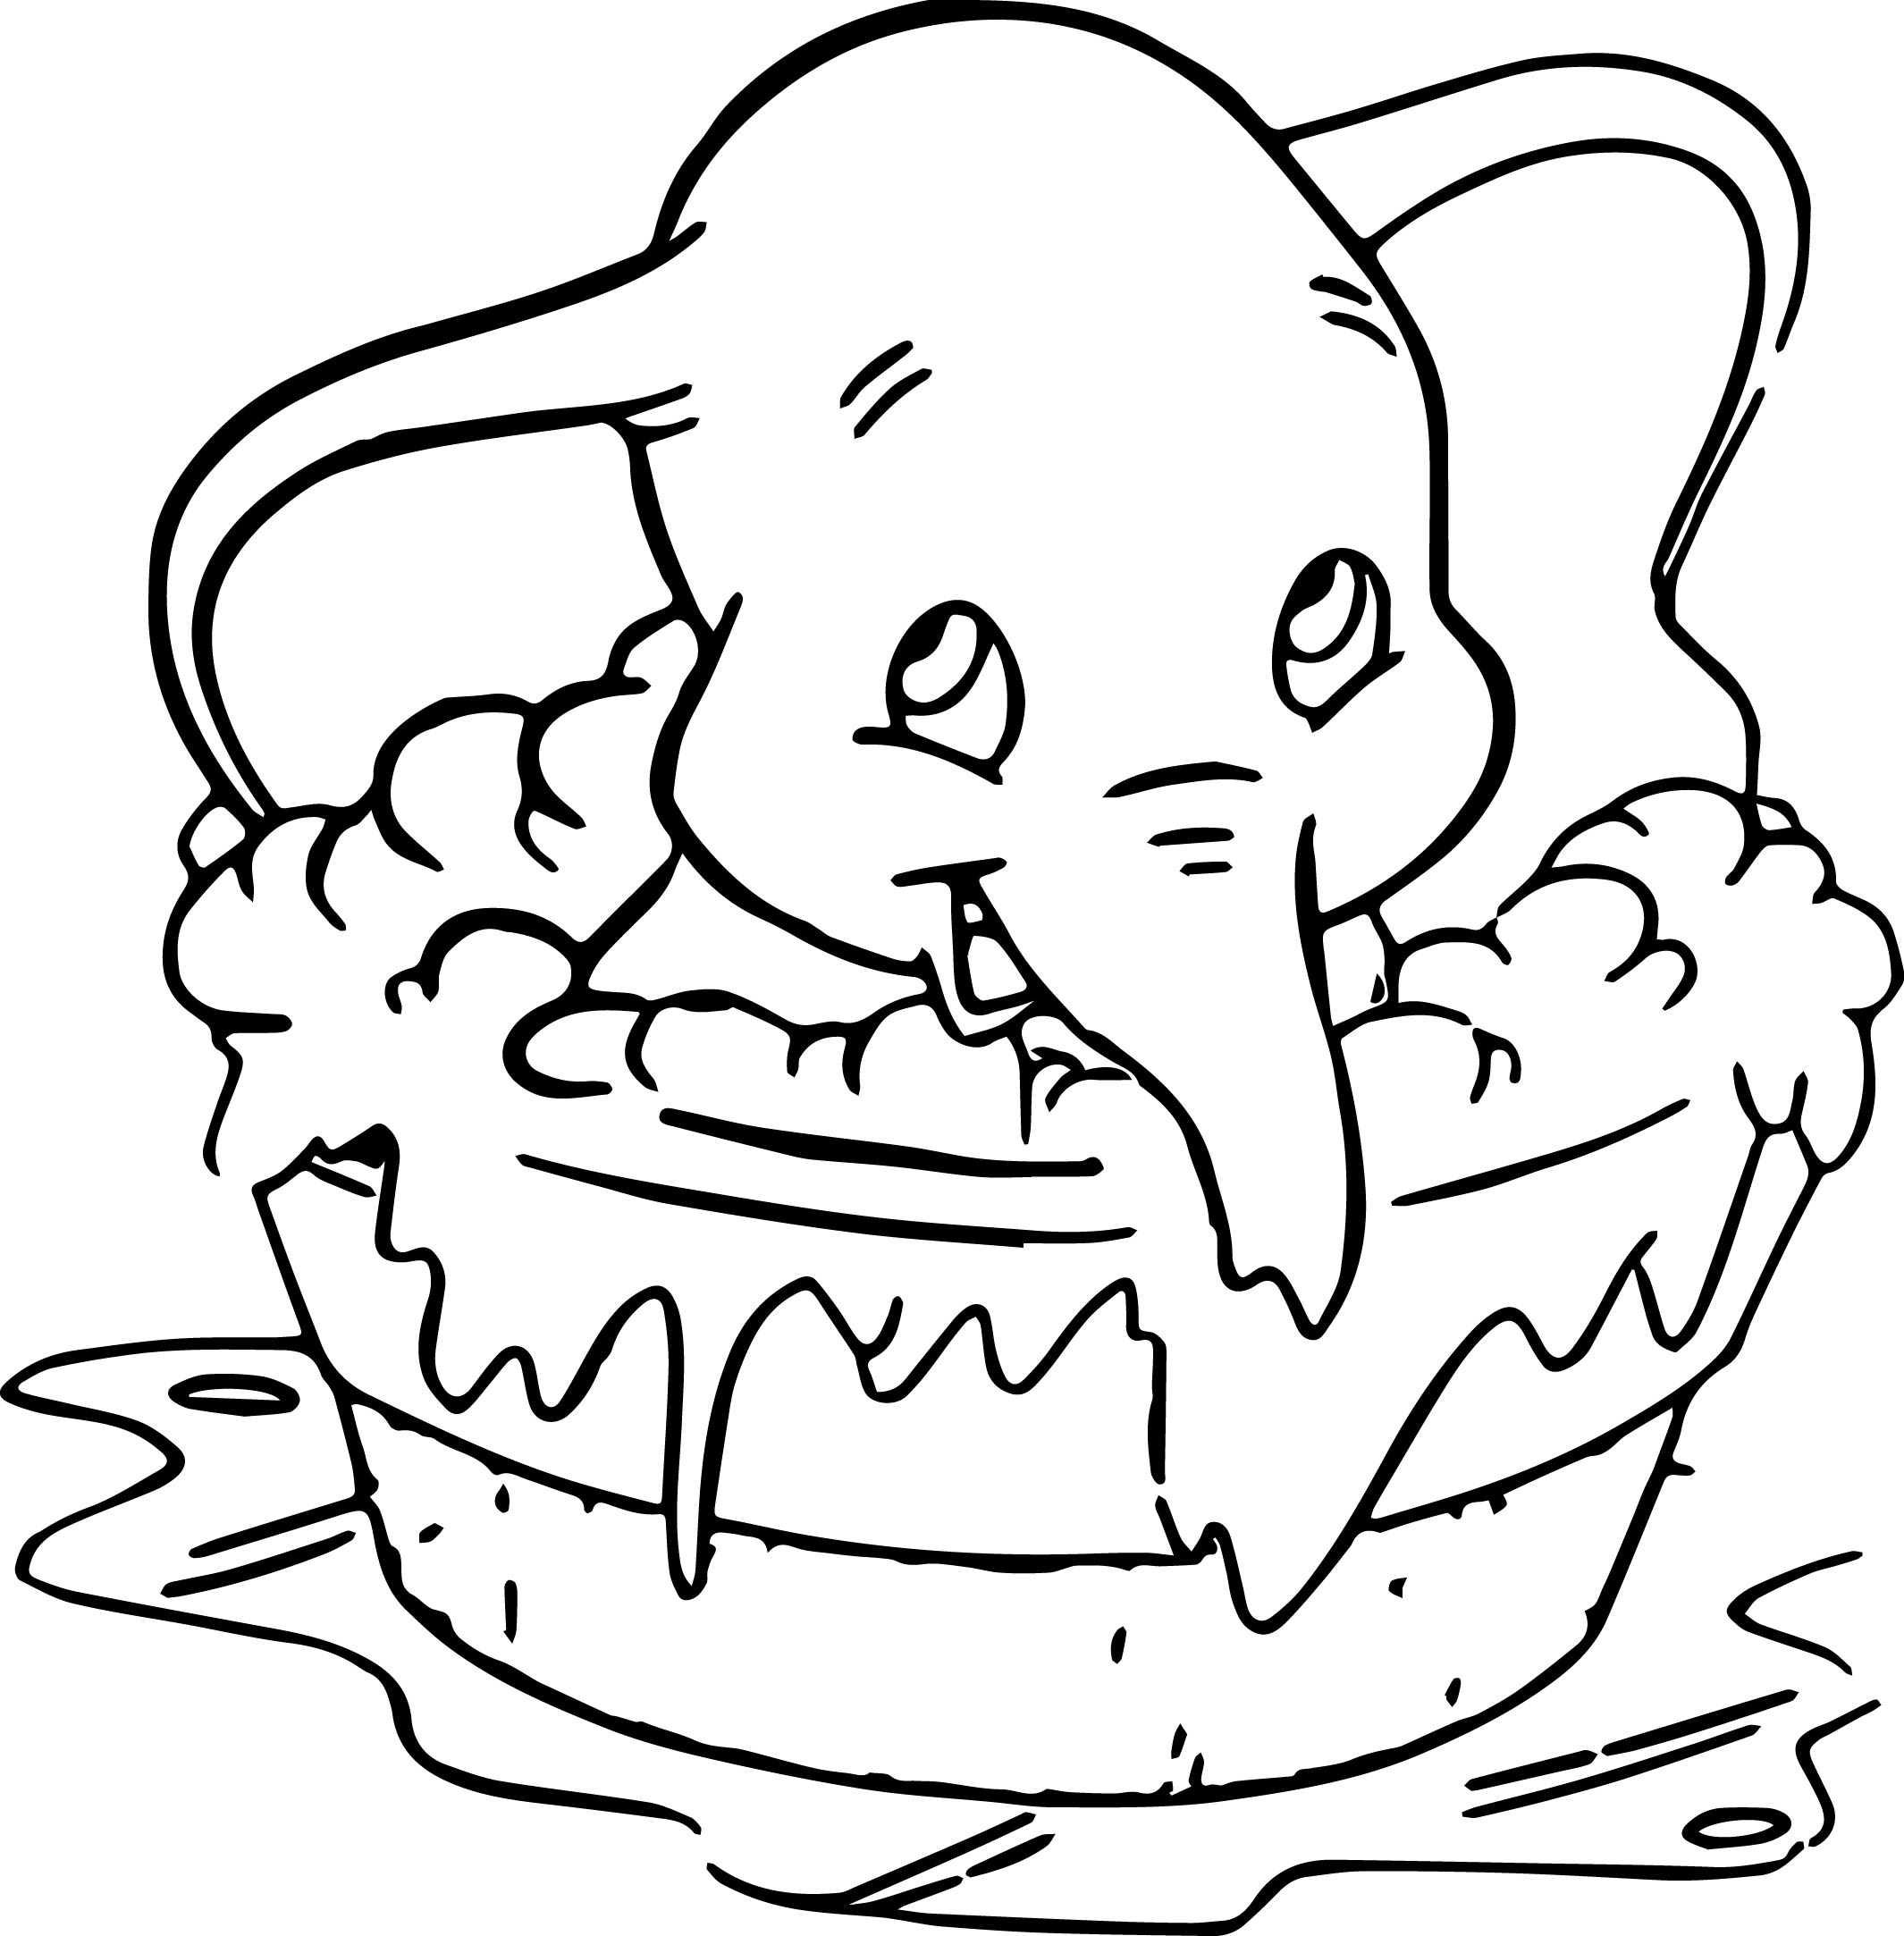 Disney Dumbo Elephant Coloring Pages Wecoloringpage Colouring In Pages